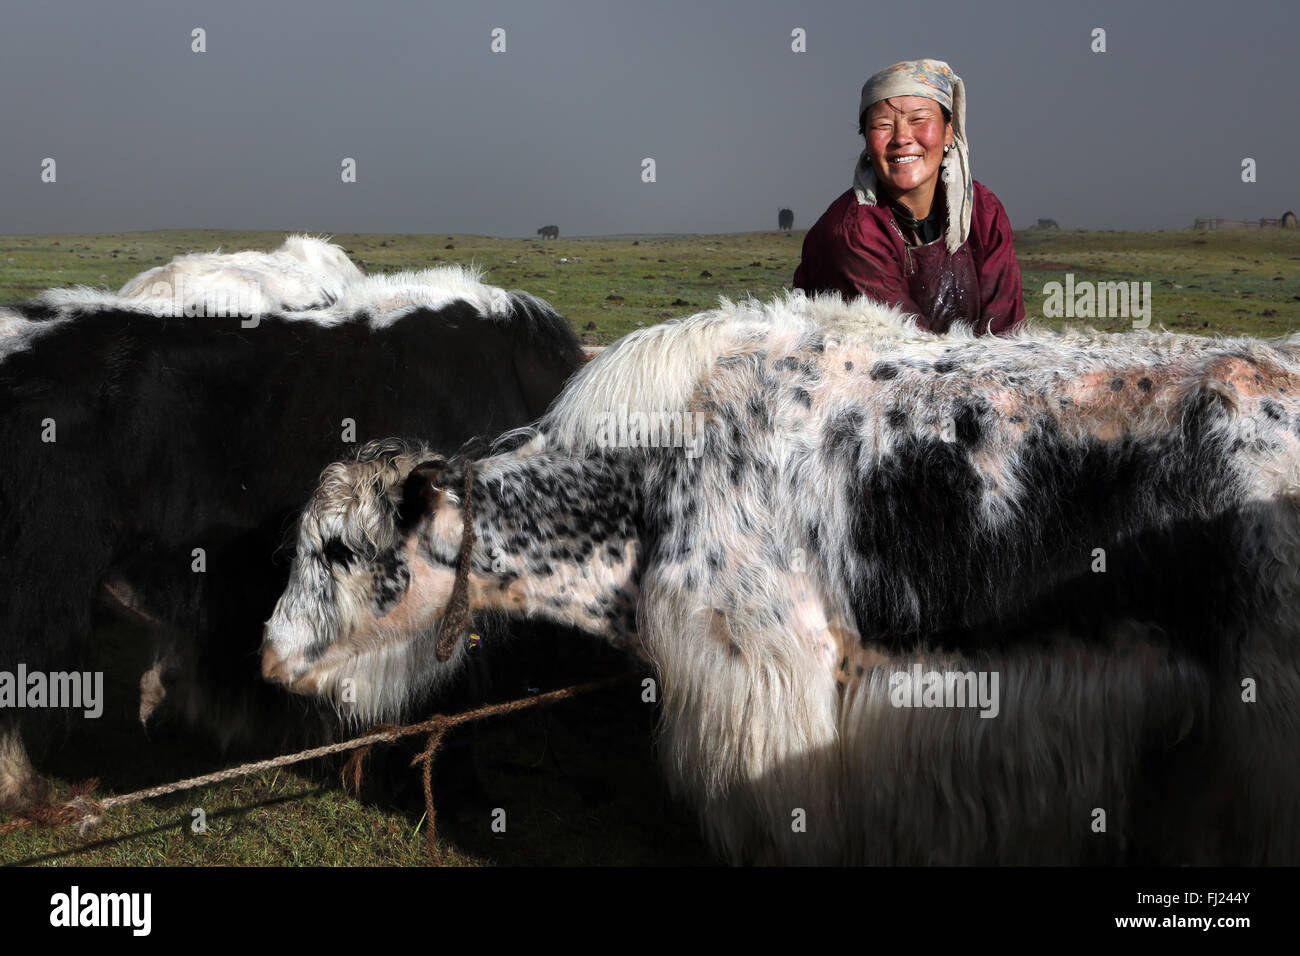 Mongolian woman milking Yaks at nomads camp in Mongolia - Stock Image